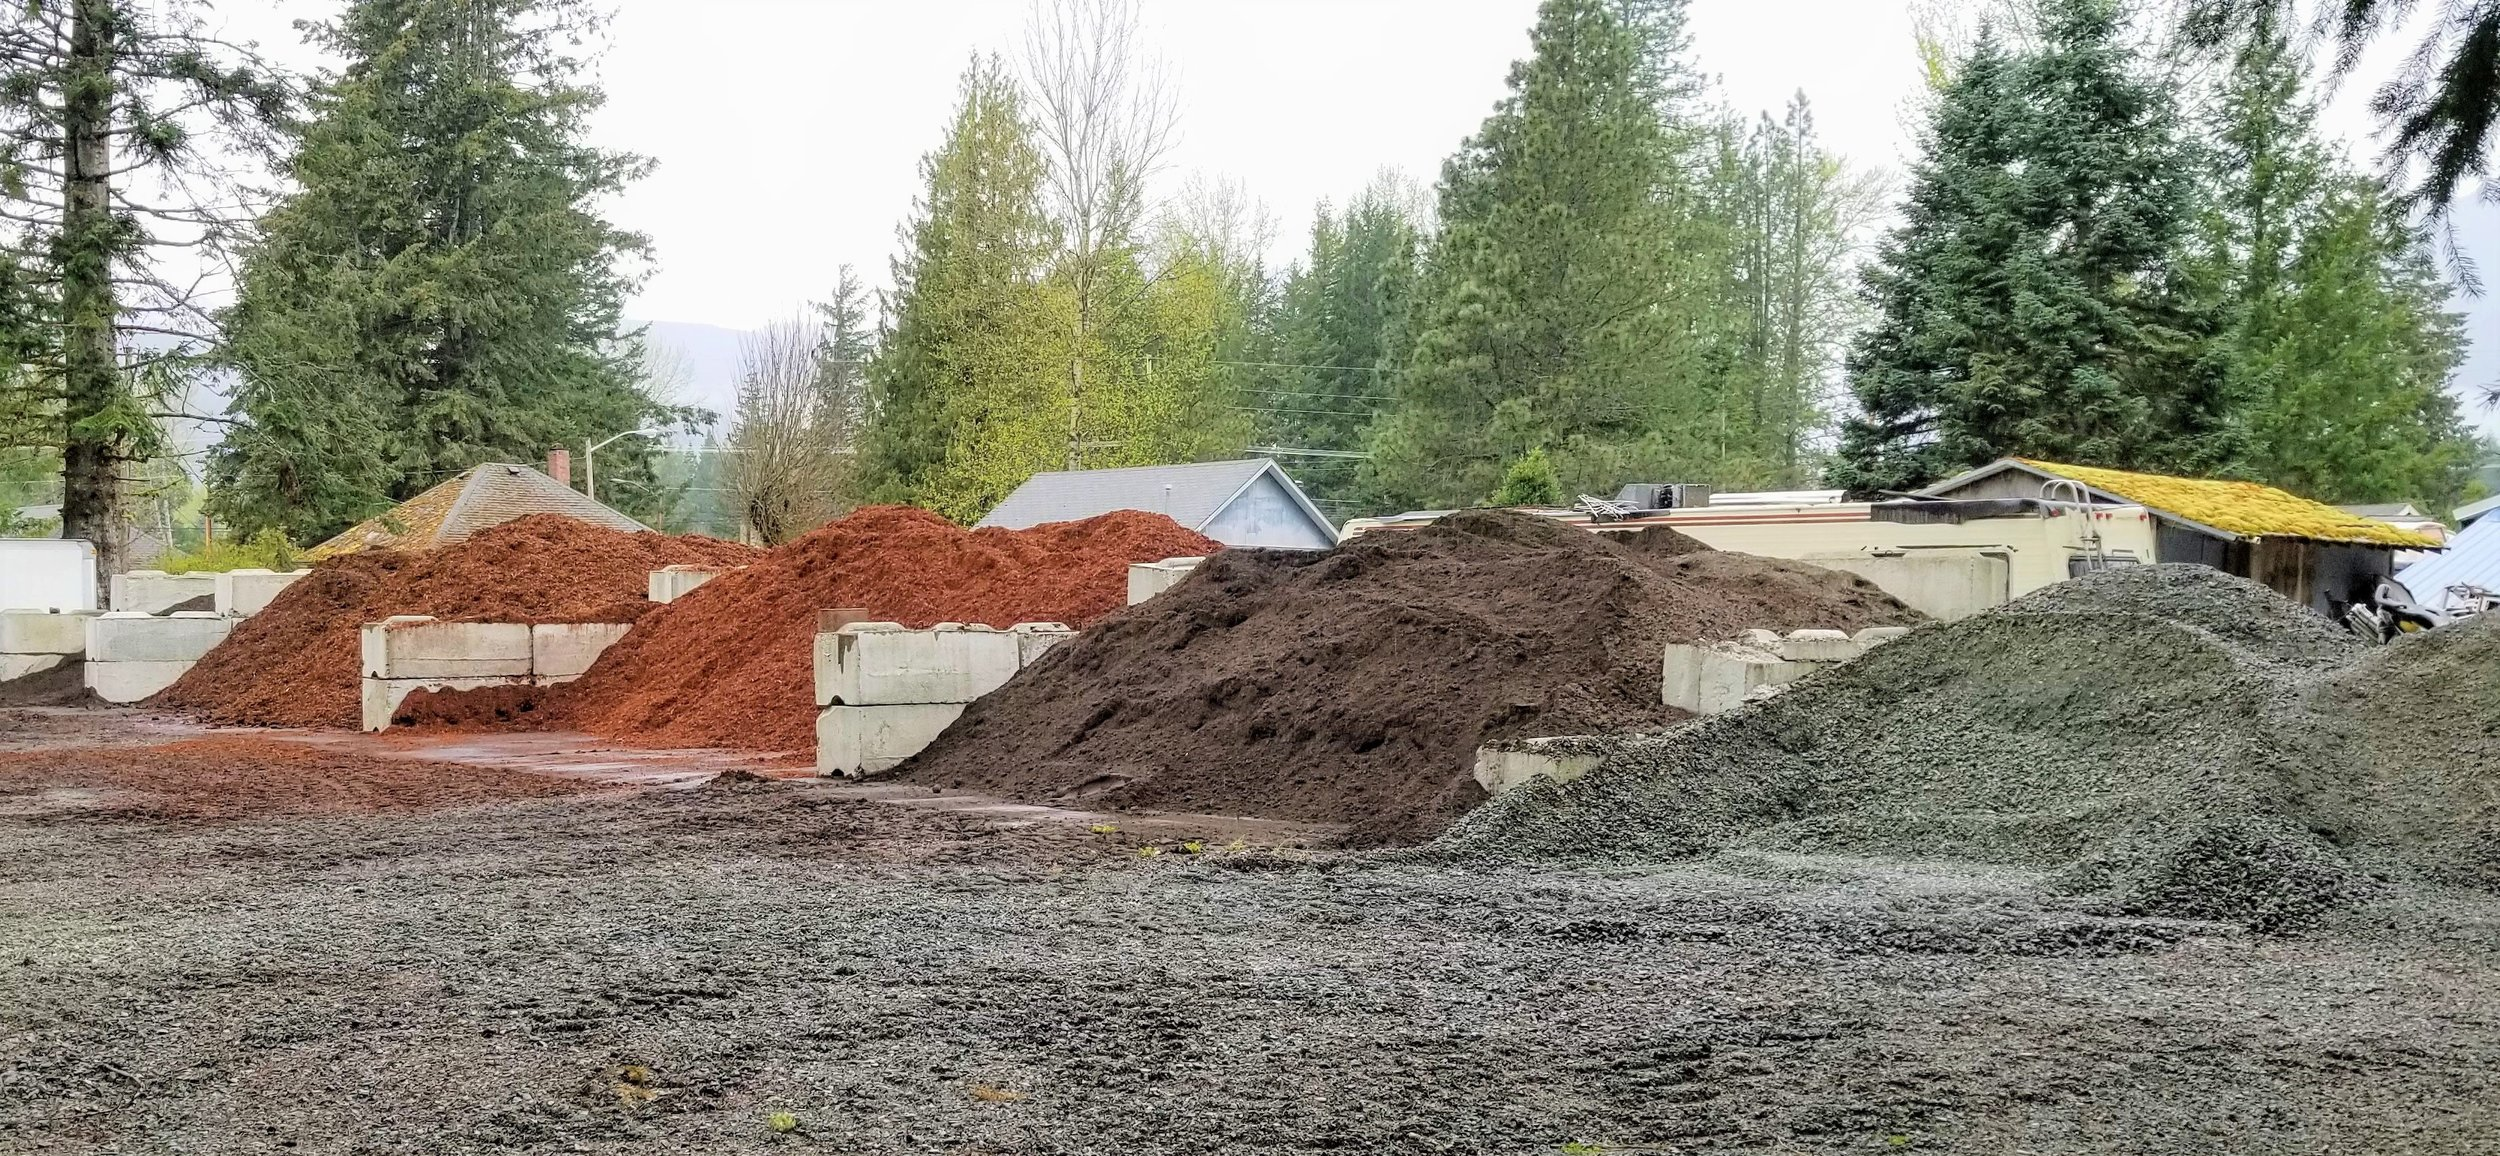 "5/8"" and 1 1/4"" Crushed Rock $37 yd  Lawn Starter Top Soil $34.55 yd  Dark Hemlock Bark $35.30 yd  Red Hemlock Bark $33.10 yd  $25 Delivery to Packwood/Randle, up to 6 yds"